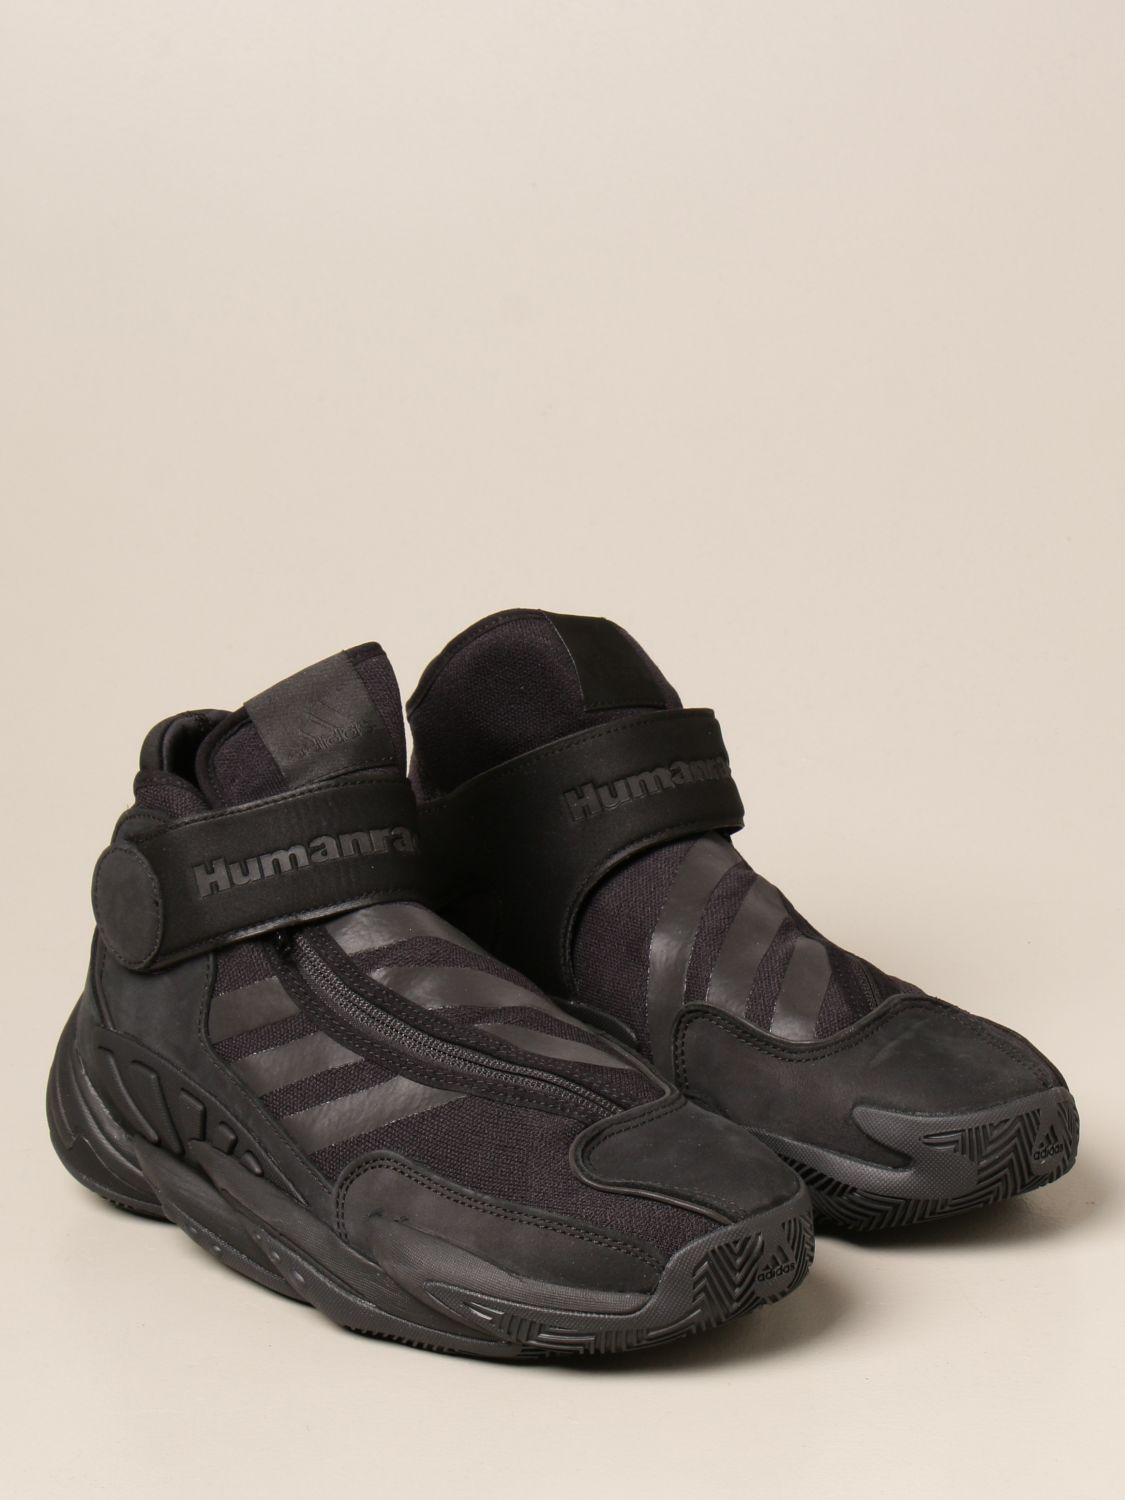 Trainers Adidas Originals By Pharrell Williams: Shoes men Adidas Originals By Pharrell Williams black 2